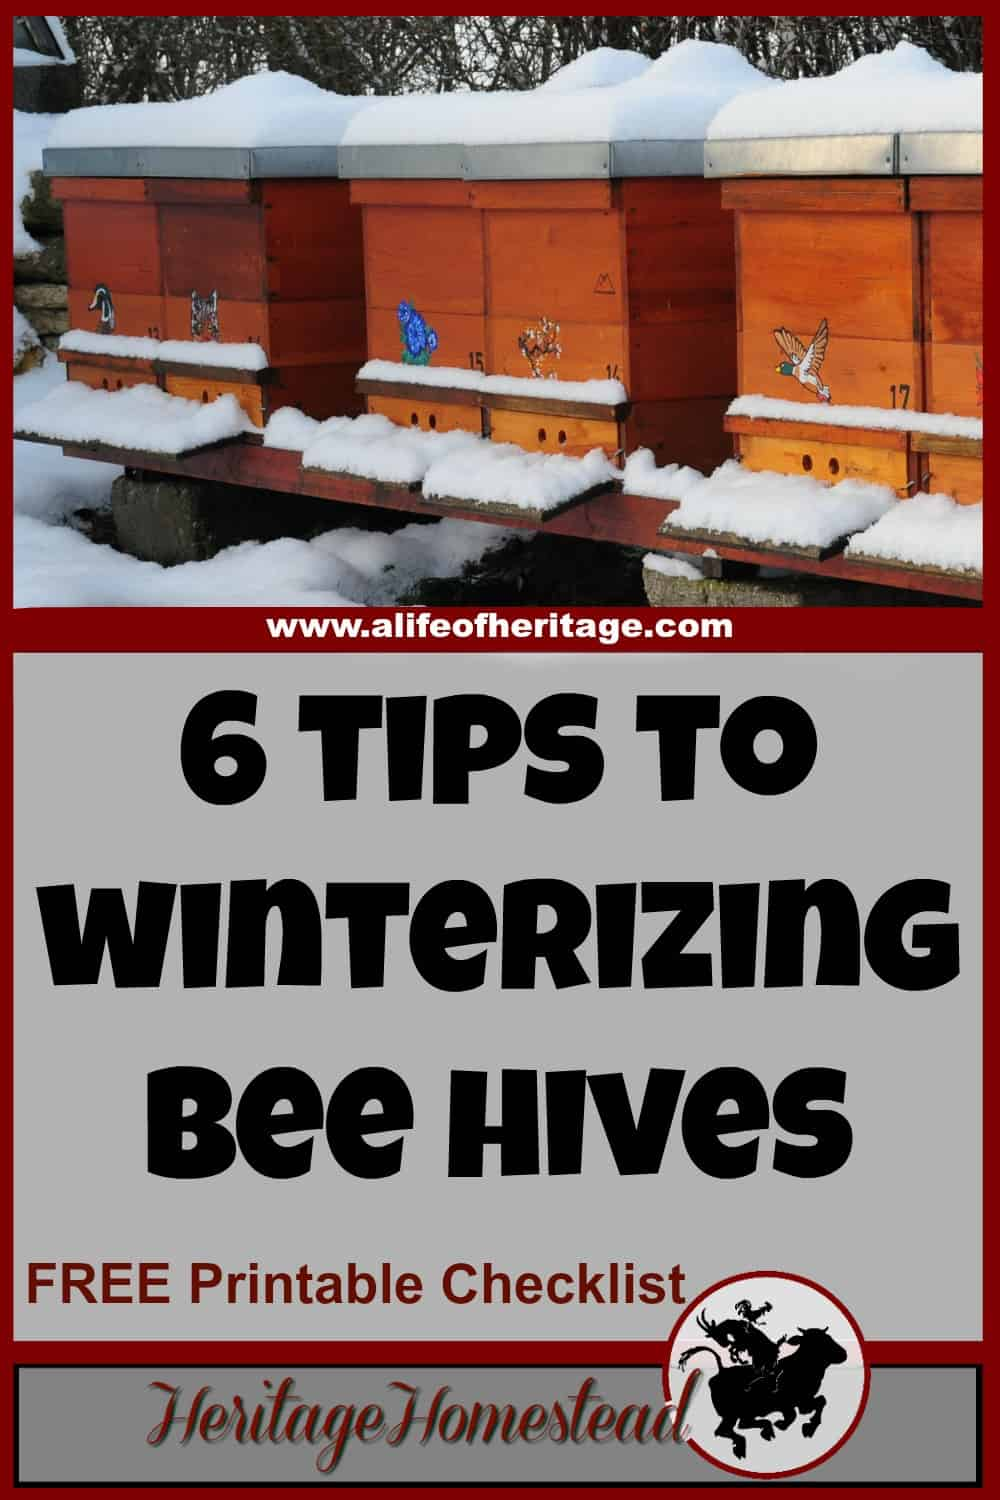 6 tips to winterizing bee hives a life of heritage